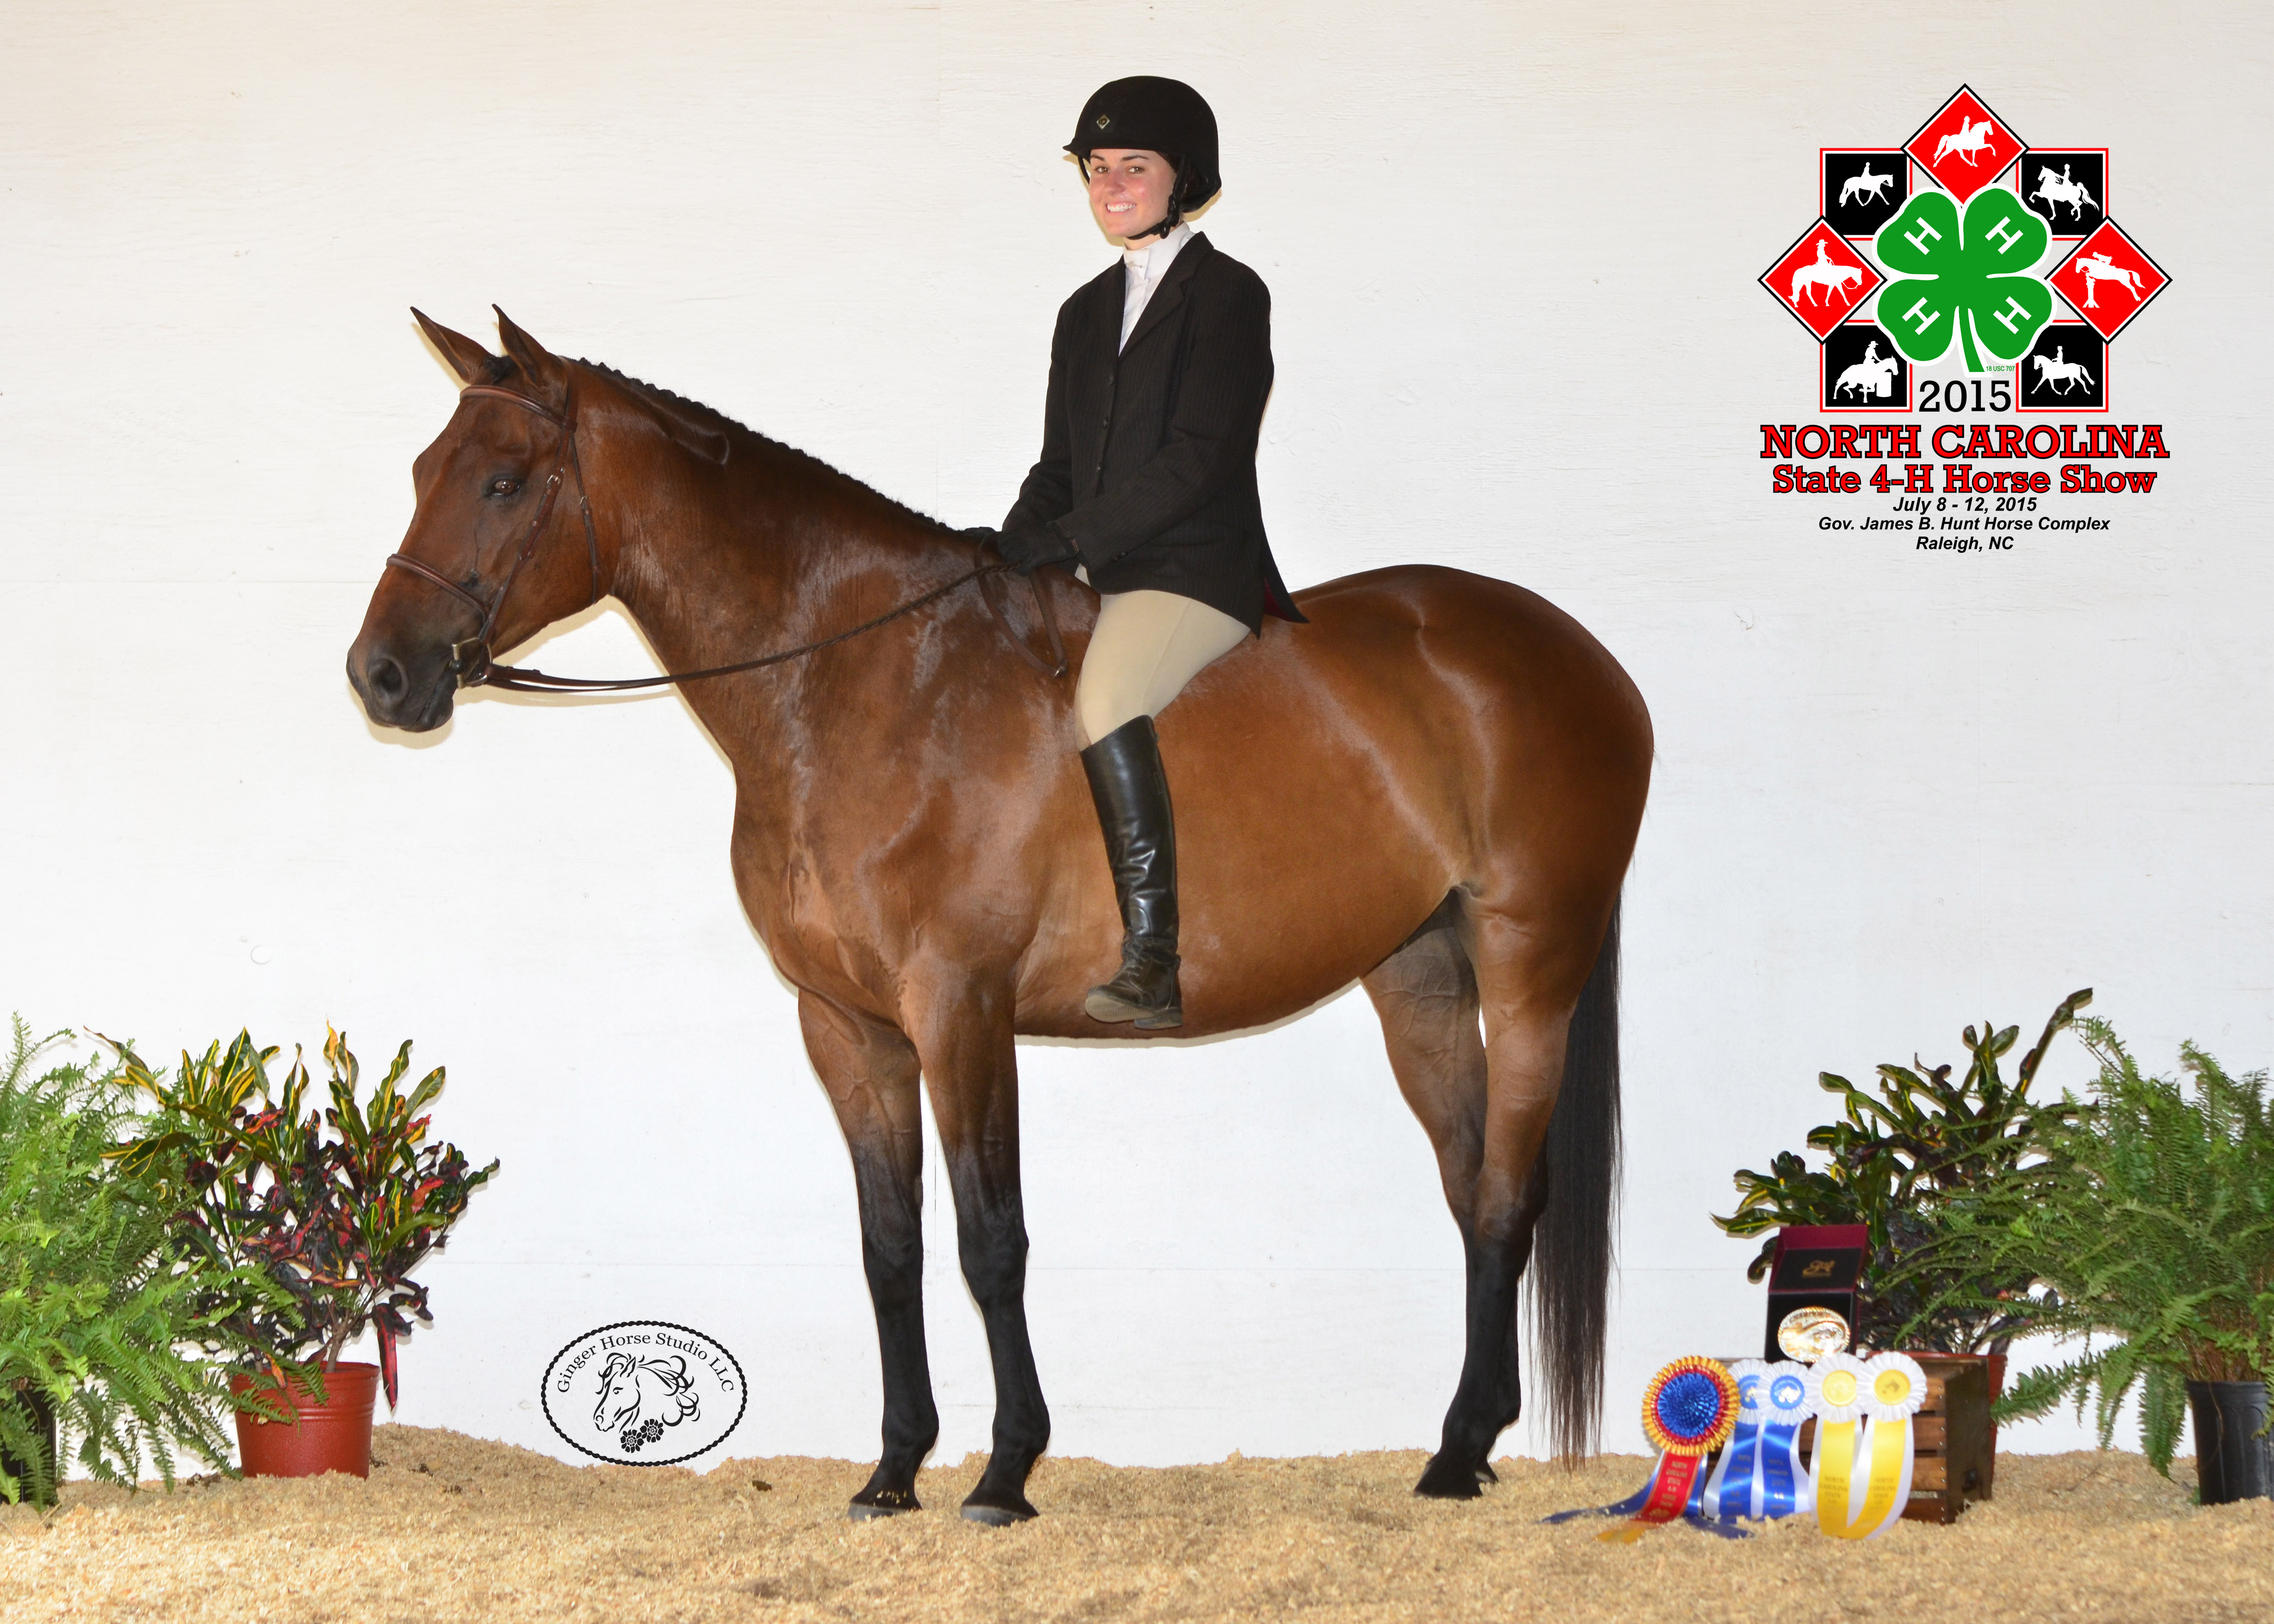 NC State 4-H Horse Show Champions Crowned | NC State Extension